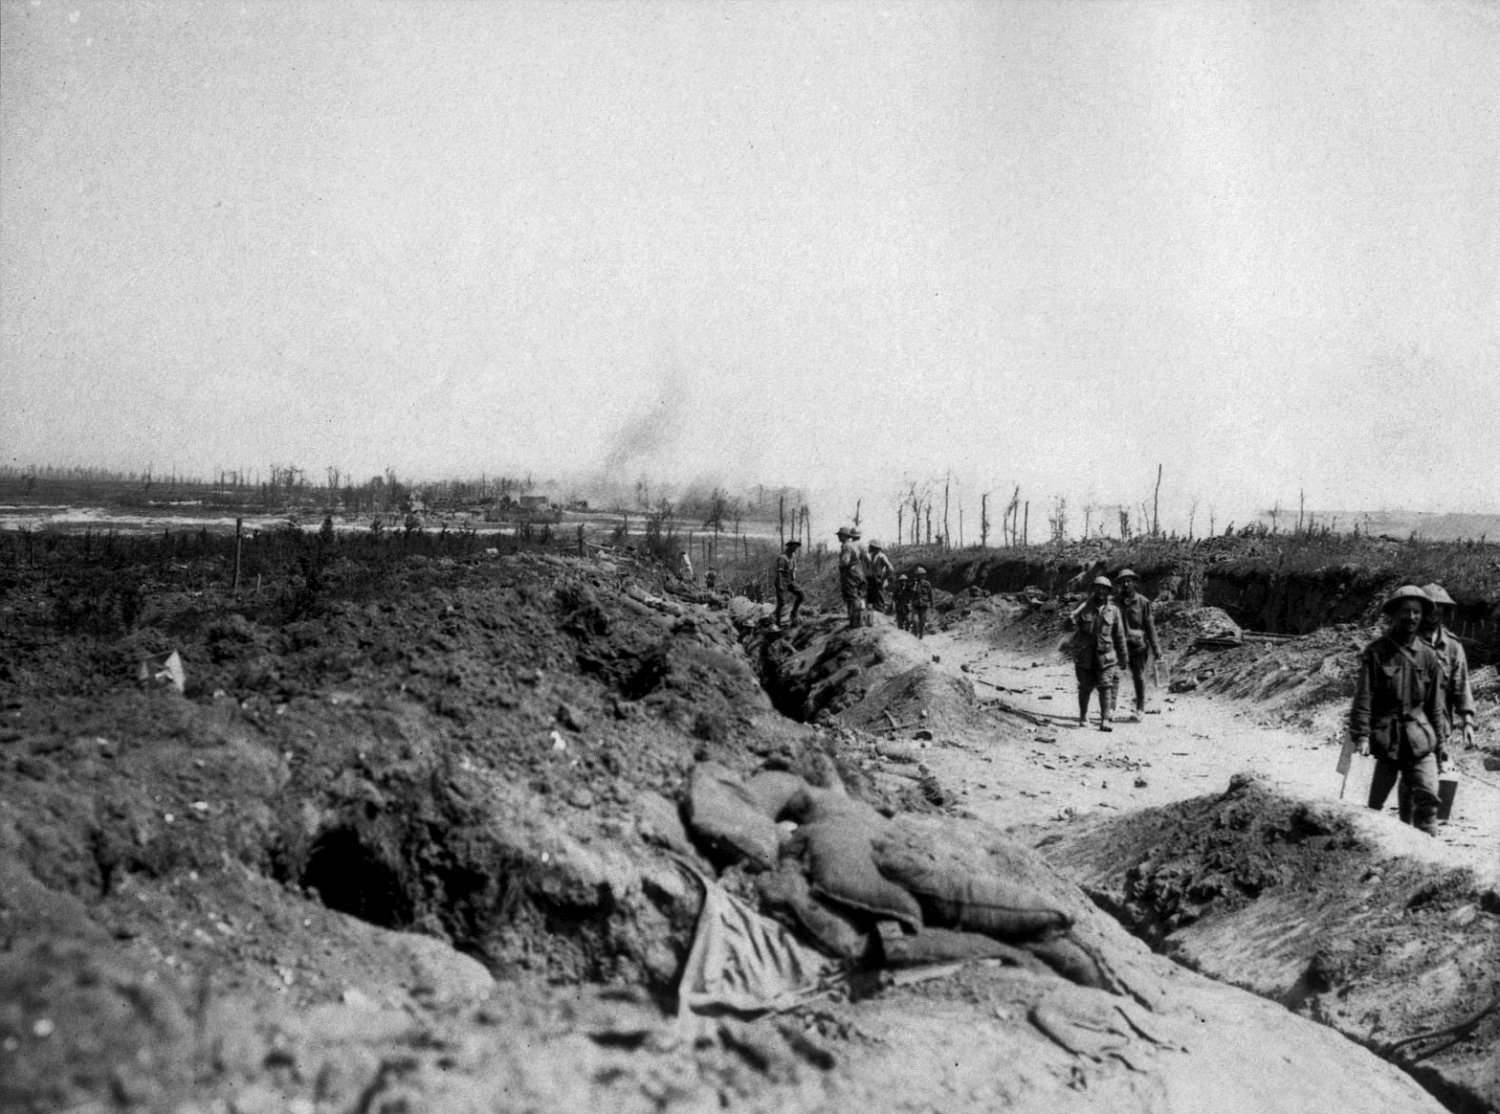 https://upload.wikimedia.org/wikipedia/commons/4/44/Road_to_Pozieres_August_1916_%28AWM_EZ0084%29.jpg